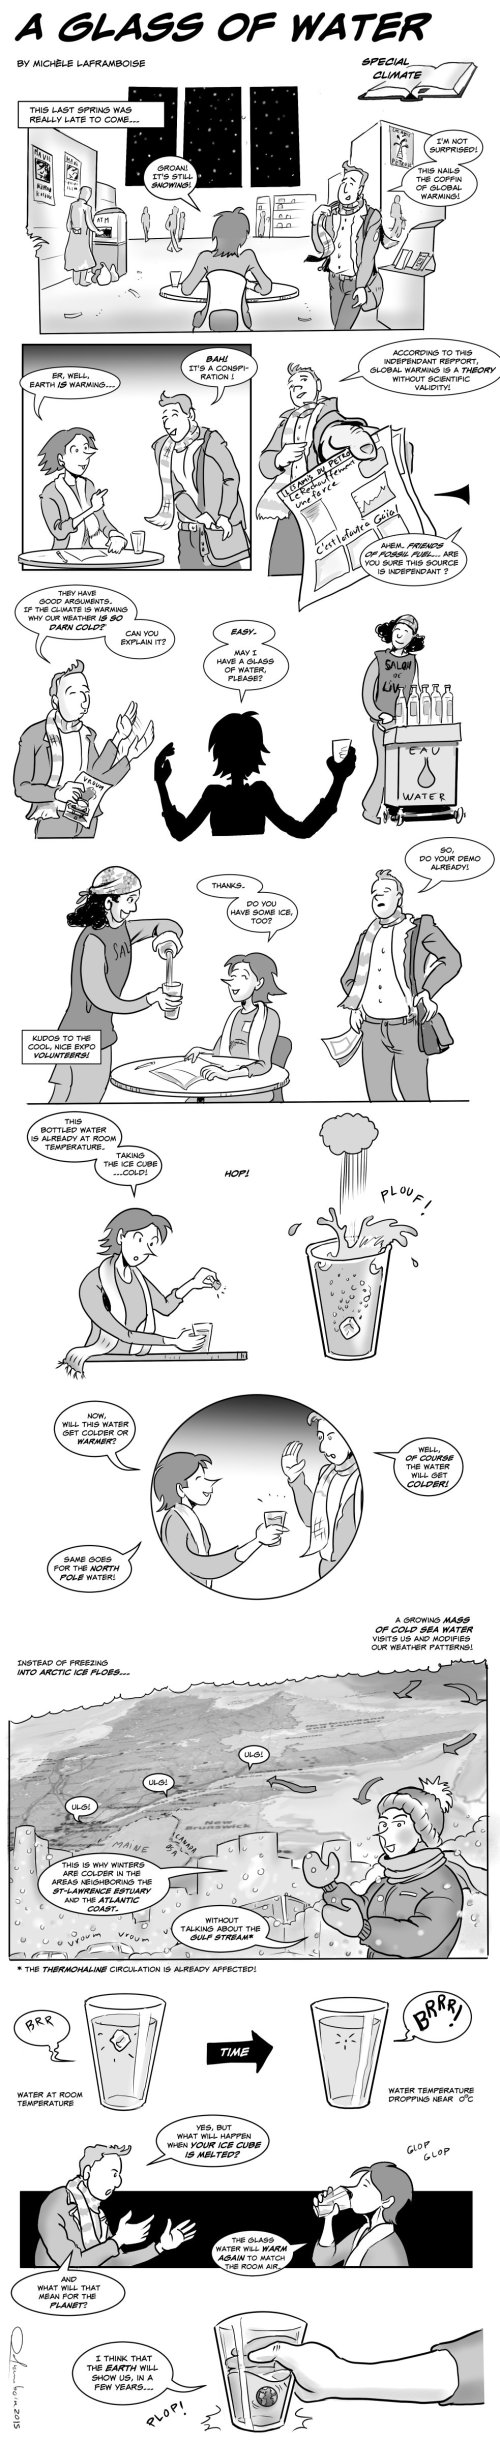 A Glass of Water - how to explain the glooal climate change with a glass of water.